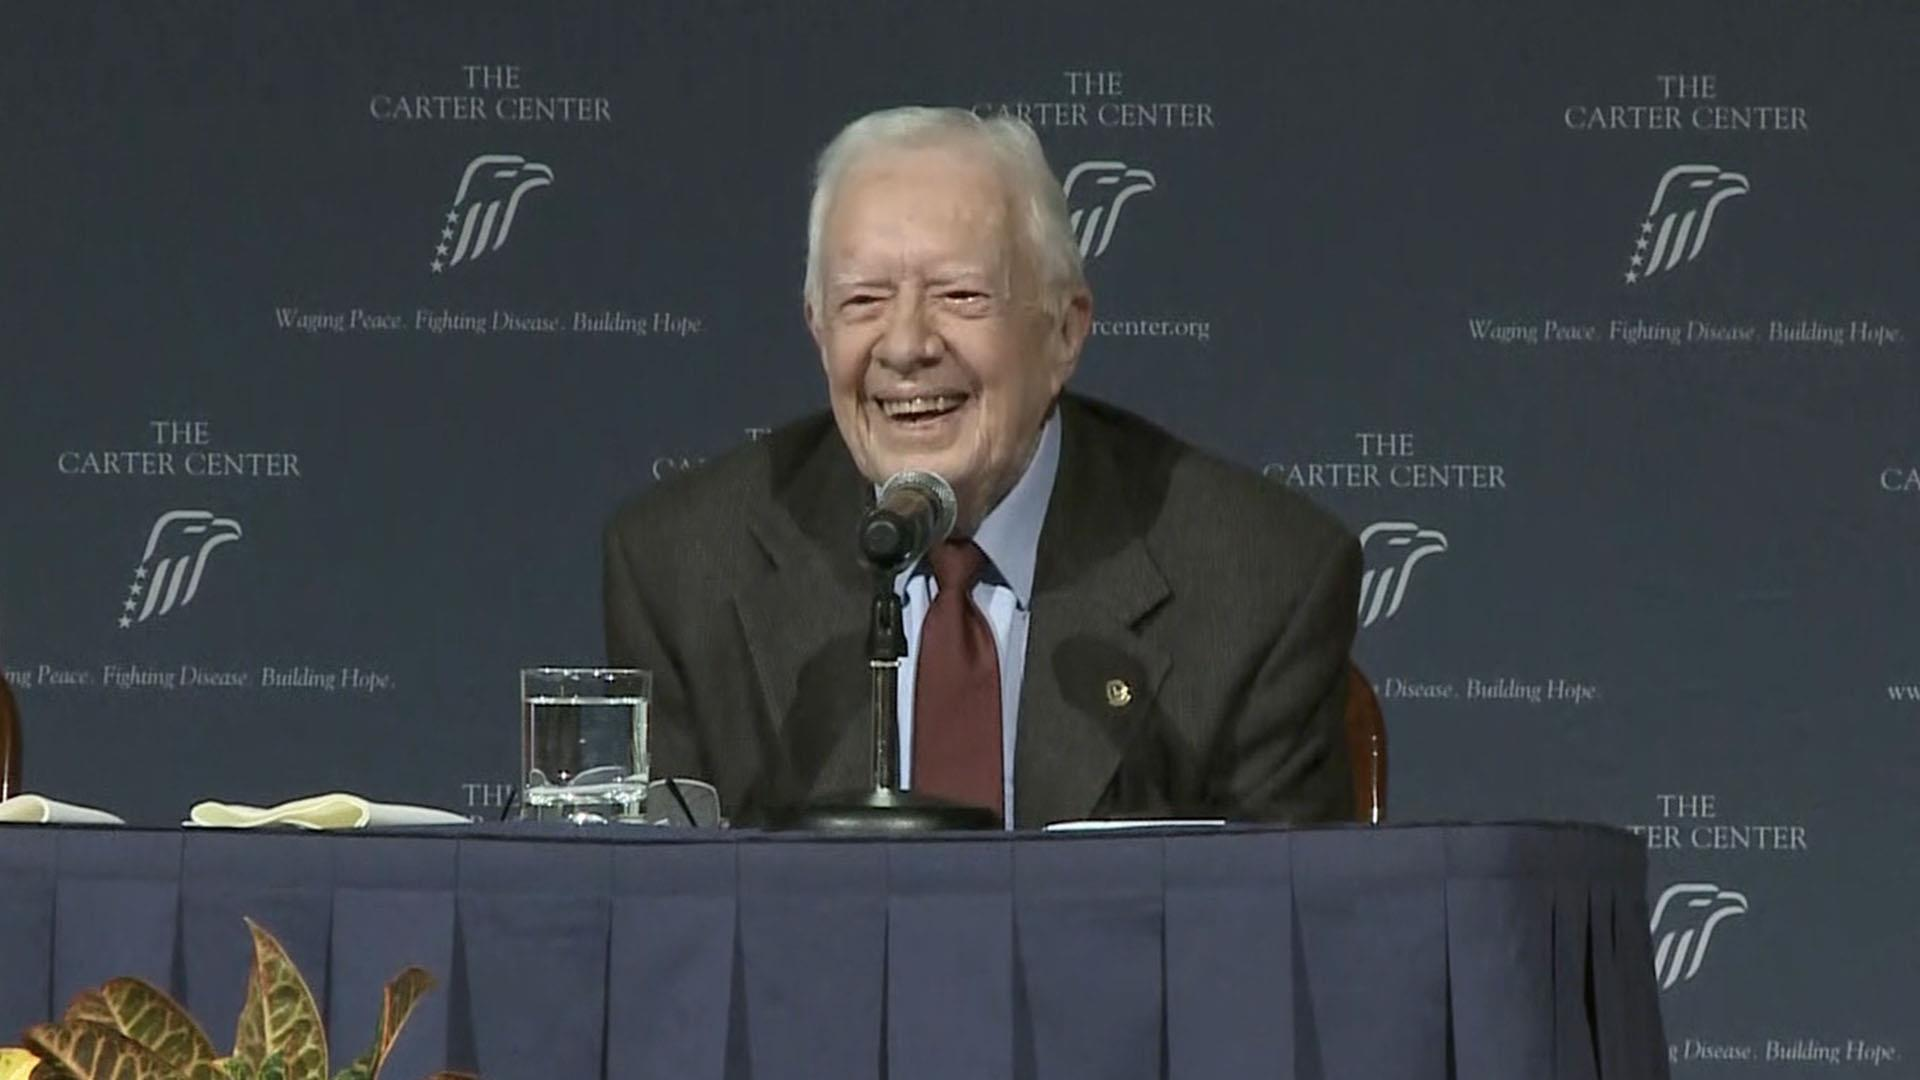 'I hope there's an age limit': Jimmy Carter says he couldn't have handled presidency at 80